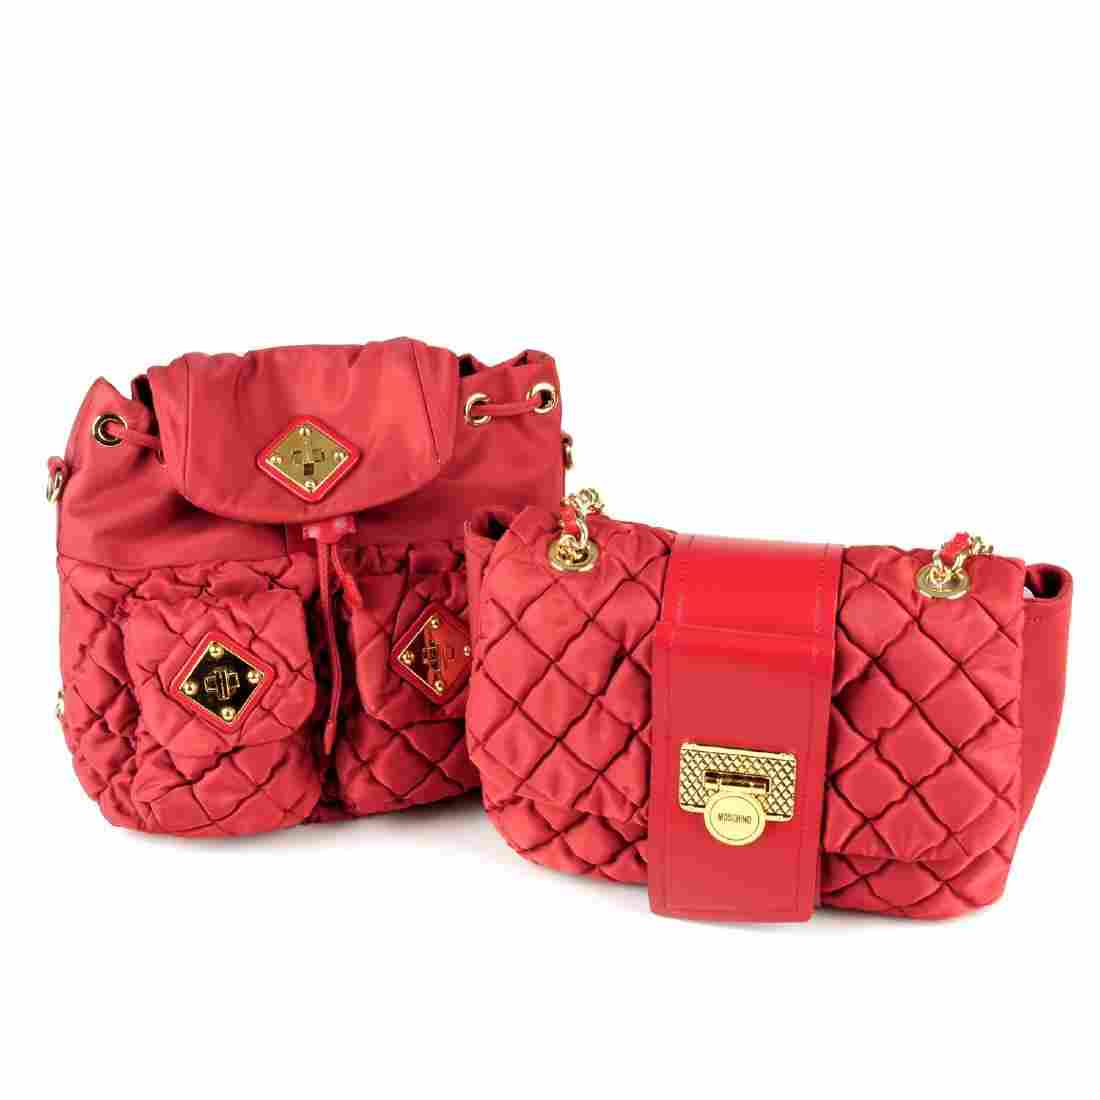 MOSCHINO - two red nylon handbags. To include a red